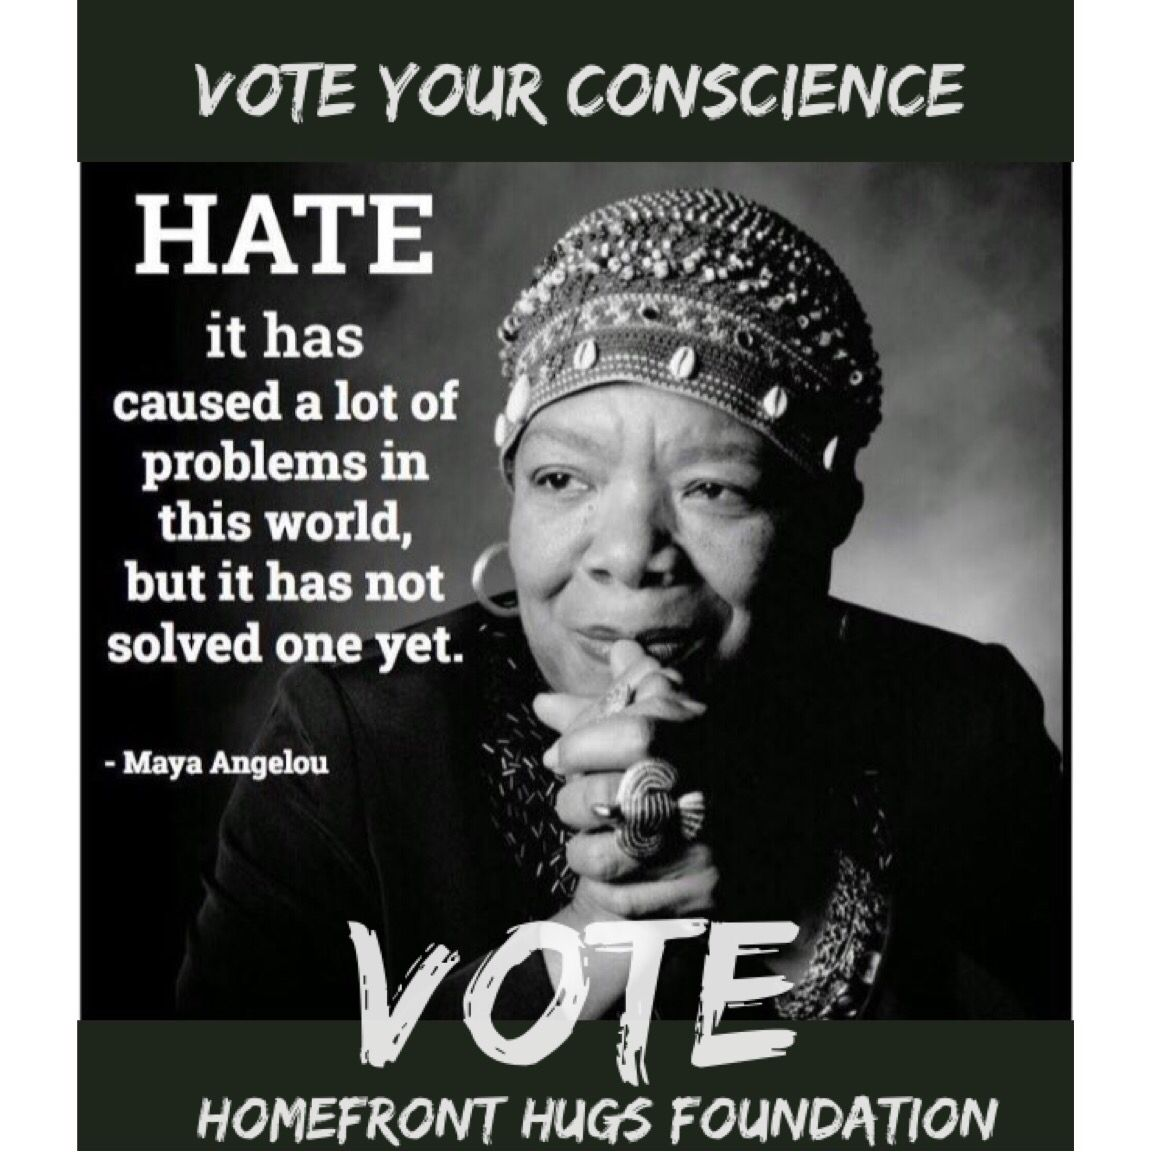 Pin By Homefront Hugs Foundation On Vote Vote Foundation Solving